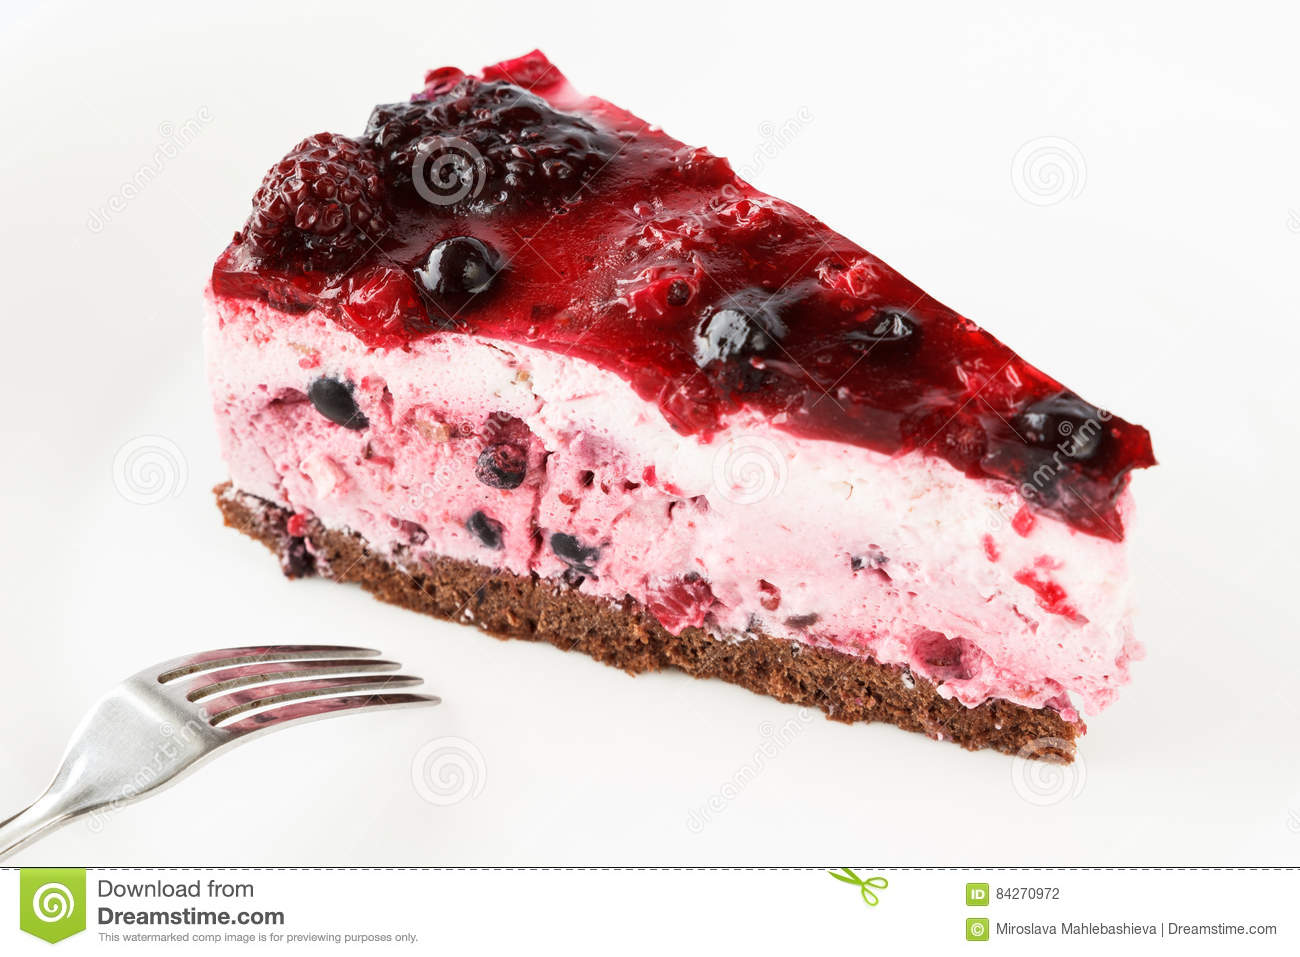 Fresh Summer Berry Tart with Red Currant Glaze Fresh Summer Berry Tart with Red Currant Glaze new pictures